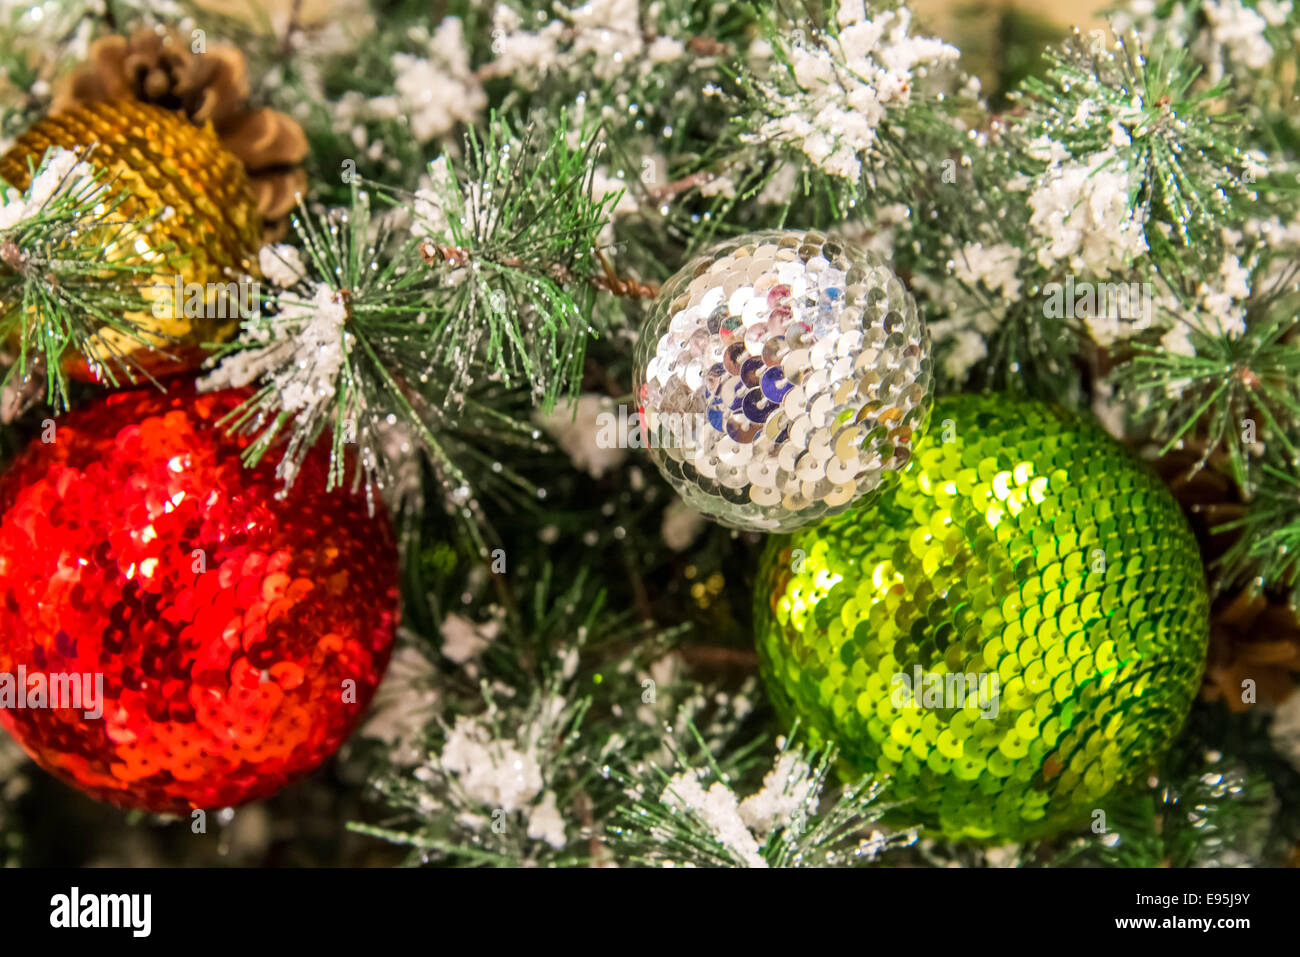 christmas decorations ornaments gold silver green red stock image - Red Gold And Silver Christmas Decorations